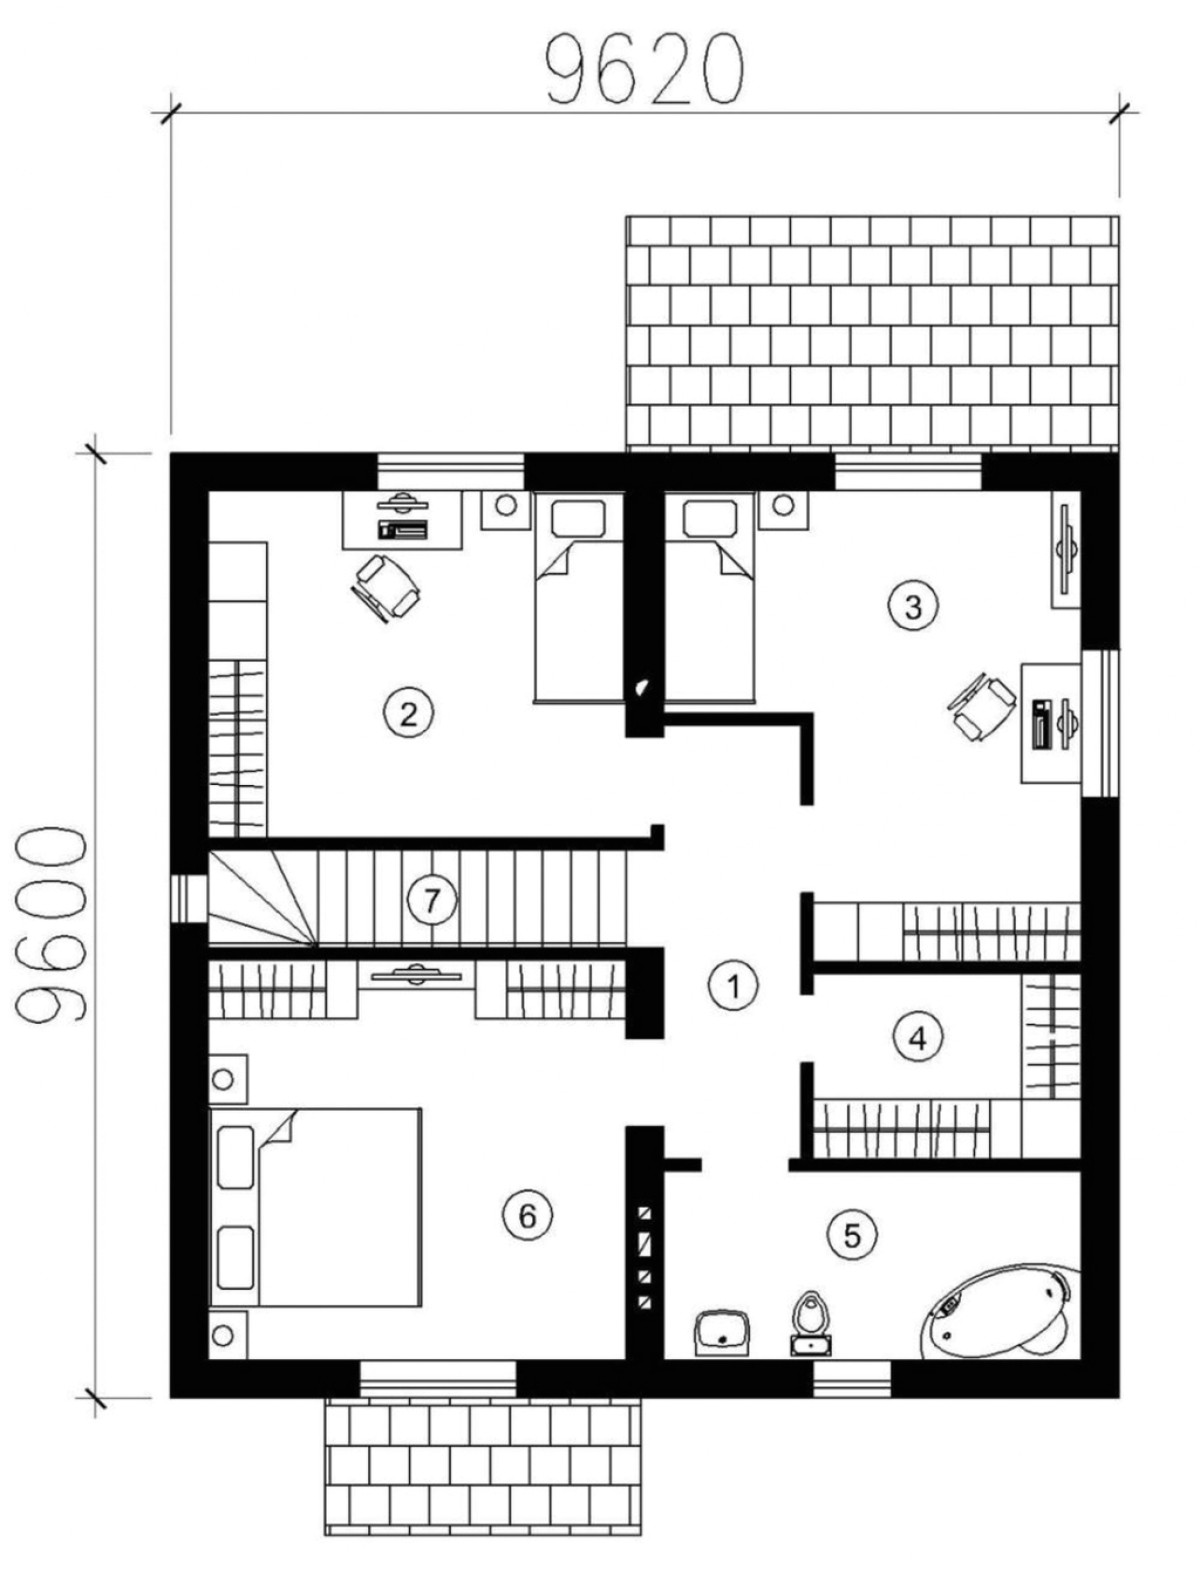 plans for sale in h beautiful small modern house designs and floor plans small modern house plans for sale small modern house plans under 1000 sq ft modern house designs